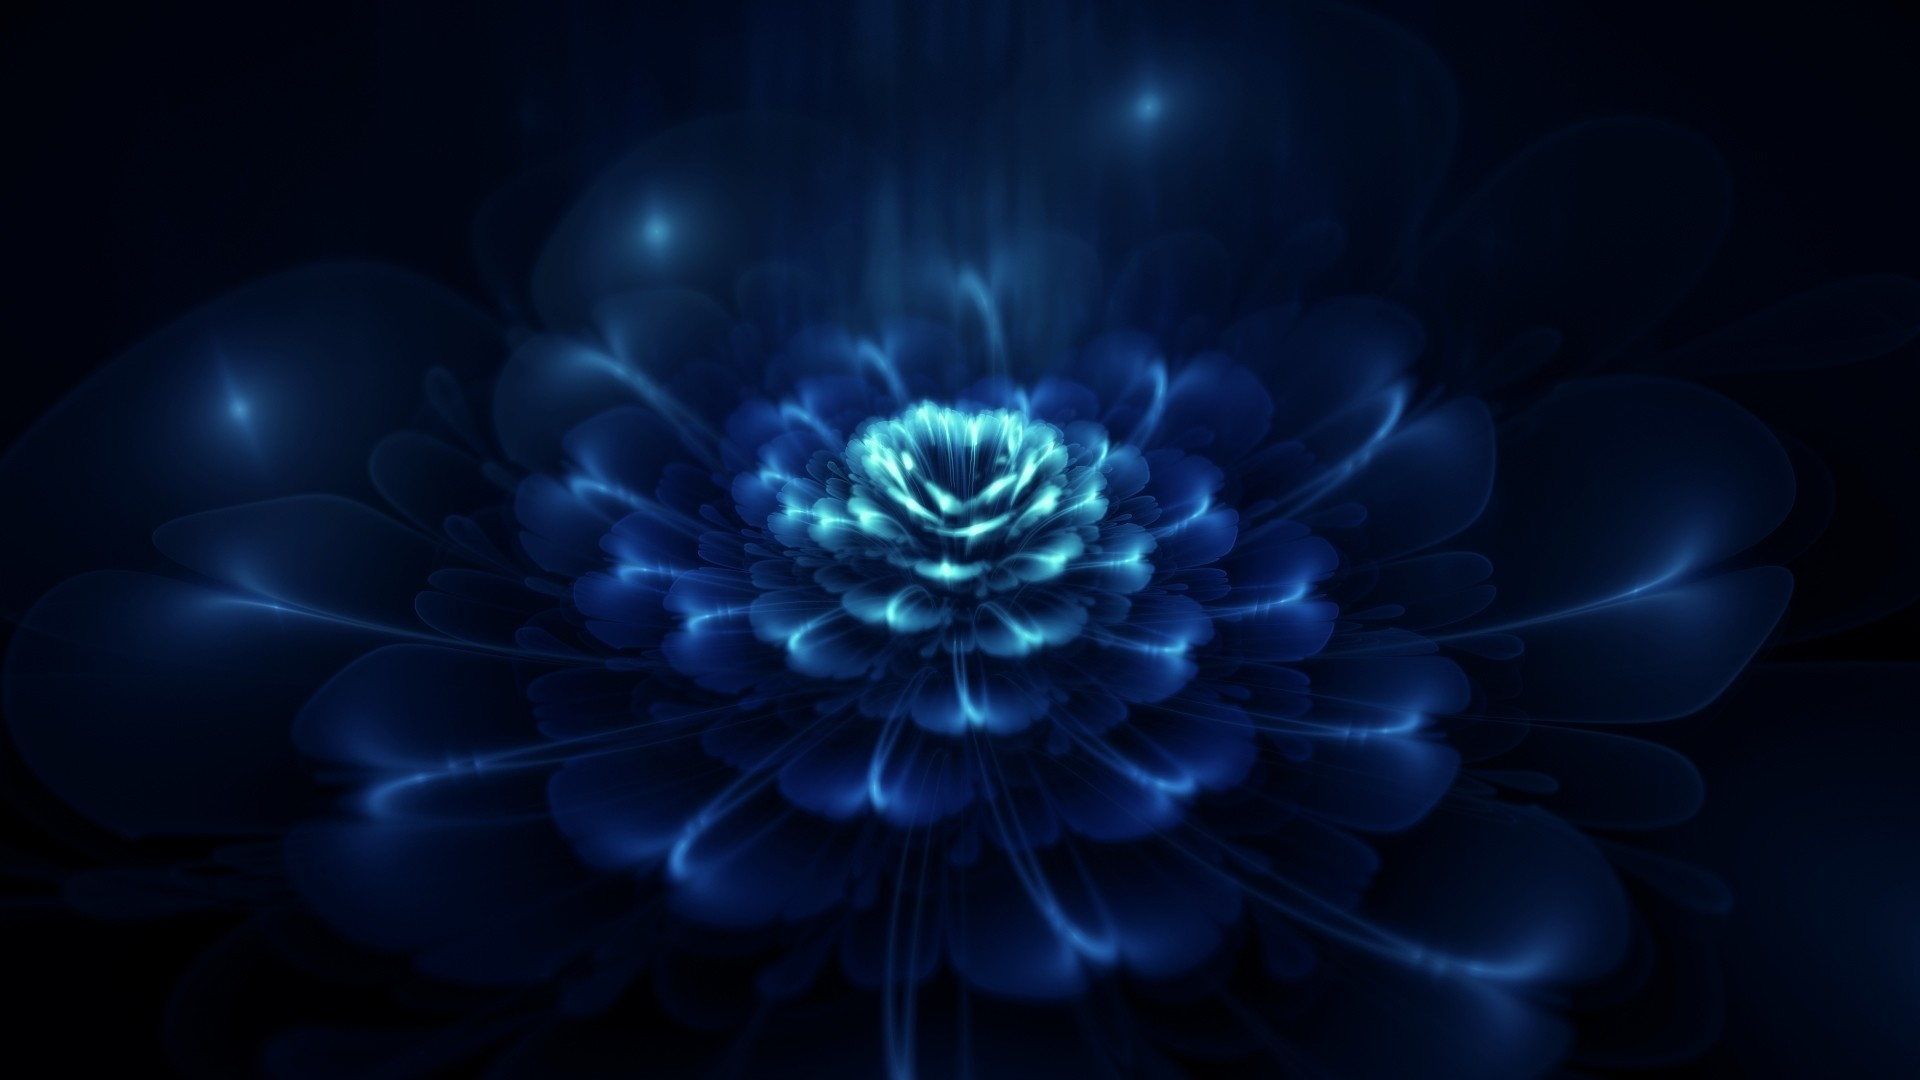 Res: 1920x1080, Title : dark blue flowers wallpaper – 1395249. Dimension : 1920 x 1080.  File Type : JPG/JPEG